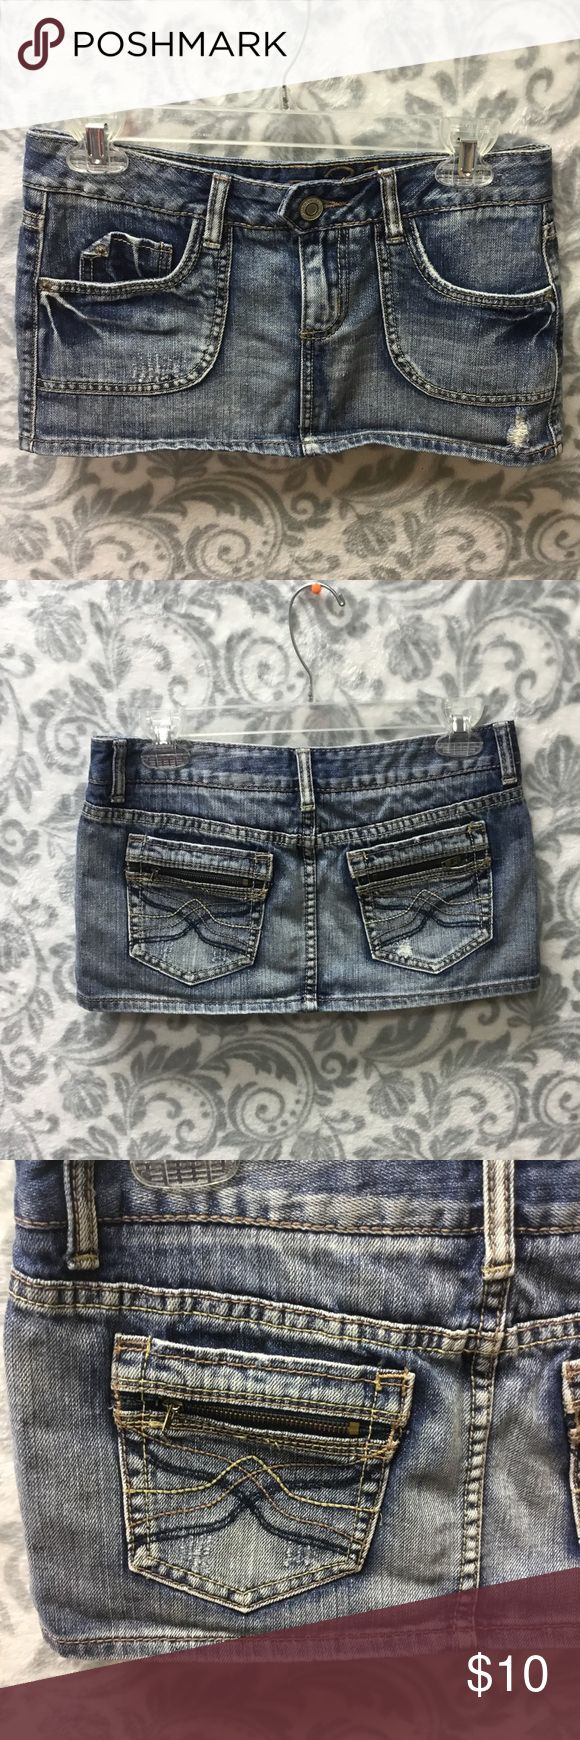 Rue 21 mini jean skirt size 1/2 zipper pockets In great condition  All fading and rips were done by the designer  Two front pockets  Two back pockets with zippers  100% cotton  If you have any questions or need specific measurements, please feel free to ask!  Bundle and receive a generous private discount! Rue 21 Skirts Mini